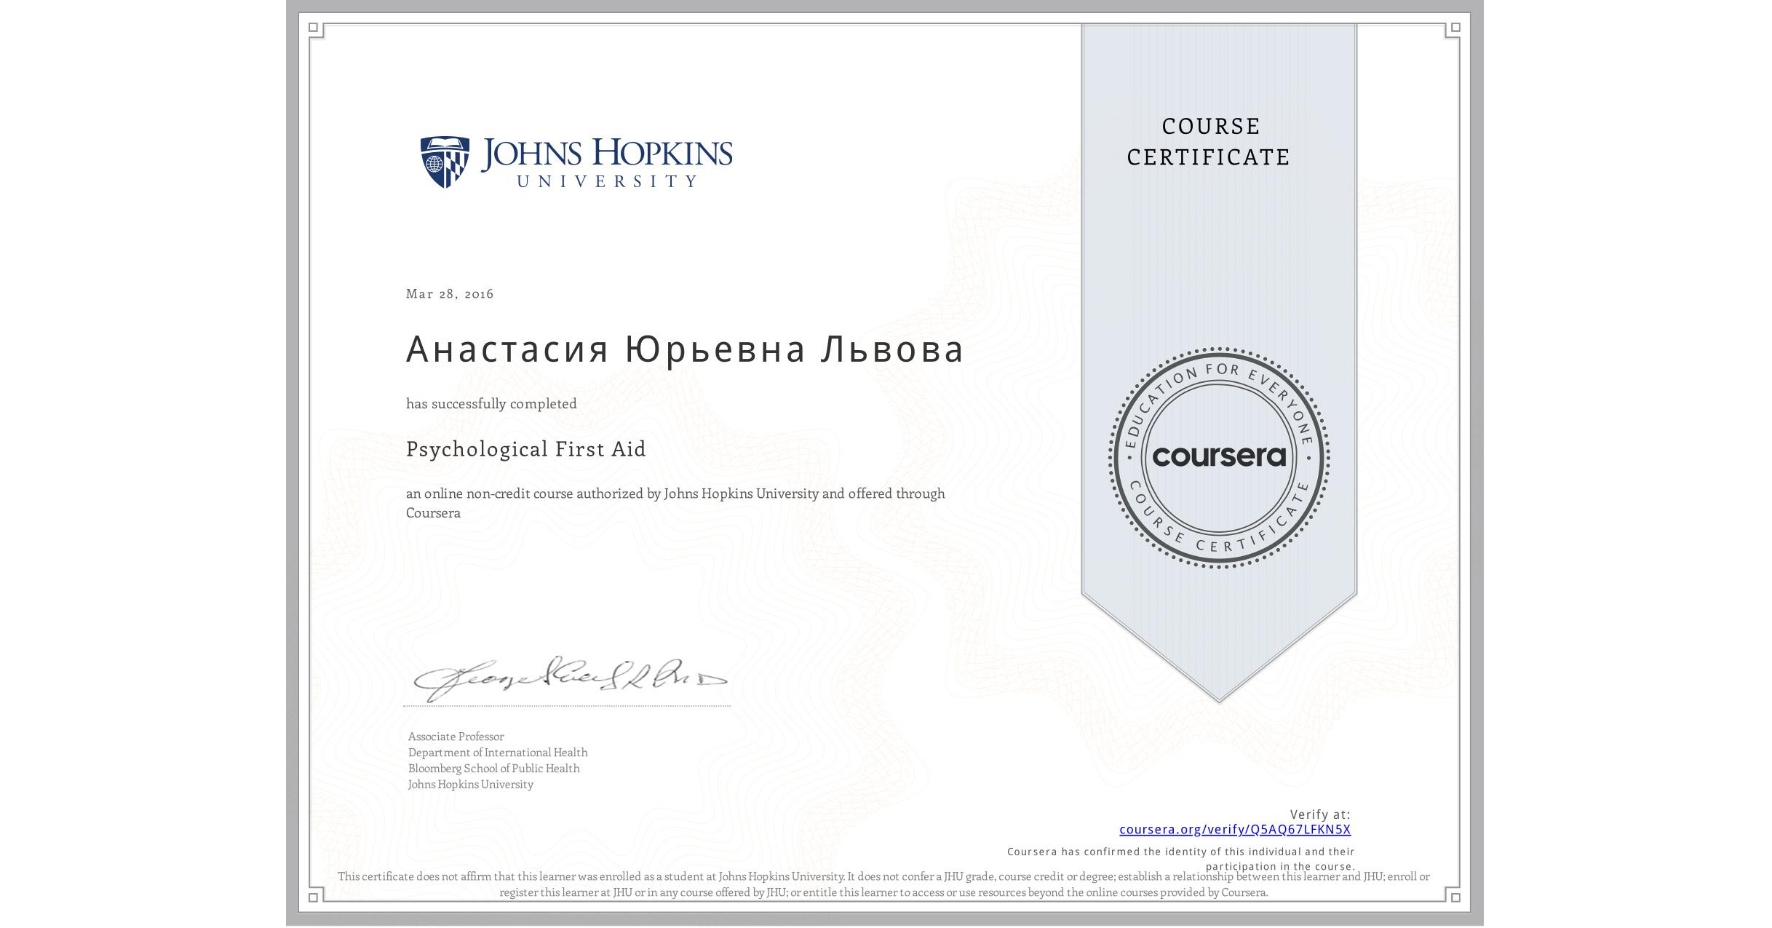 View certificate for Анастасия Юрьевна Львова, Psychological First Aid, an online non-credit course authorized by Johns Hopkins University and offered through Coursera